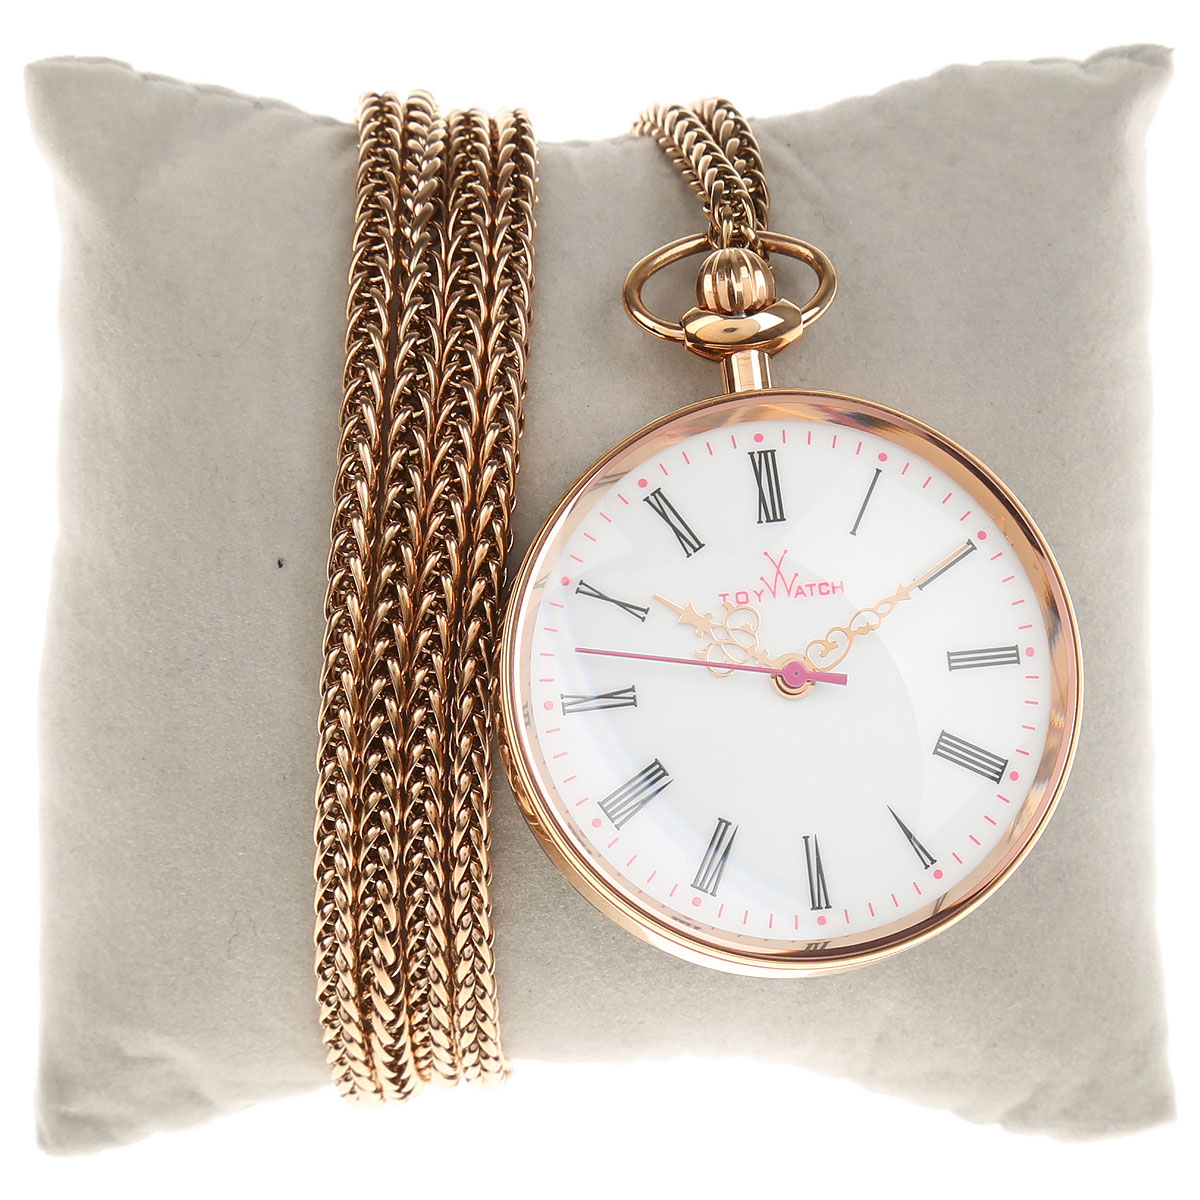 Toy Watch Watch for Women Gold Canada - GOOFASH - Womens WATCHES